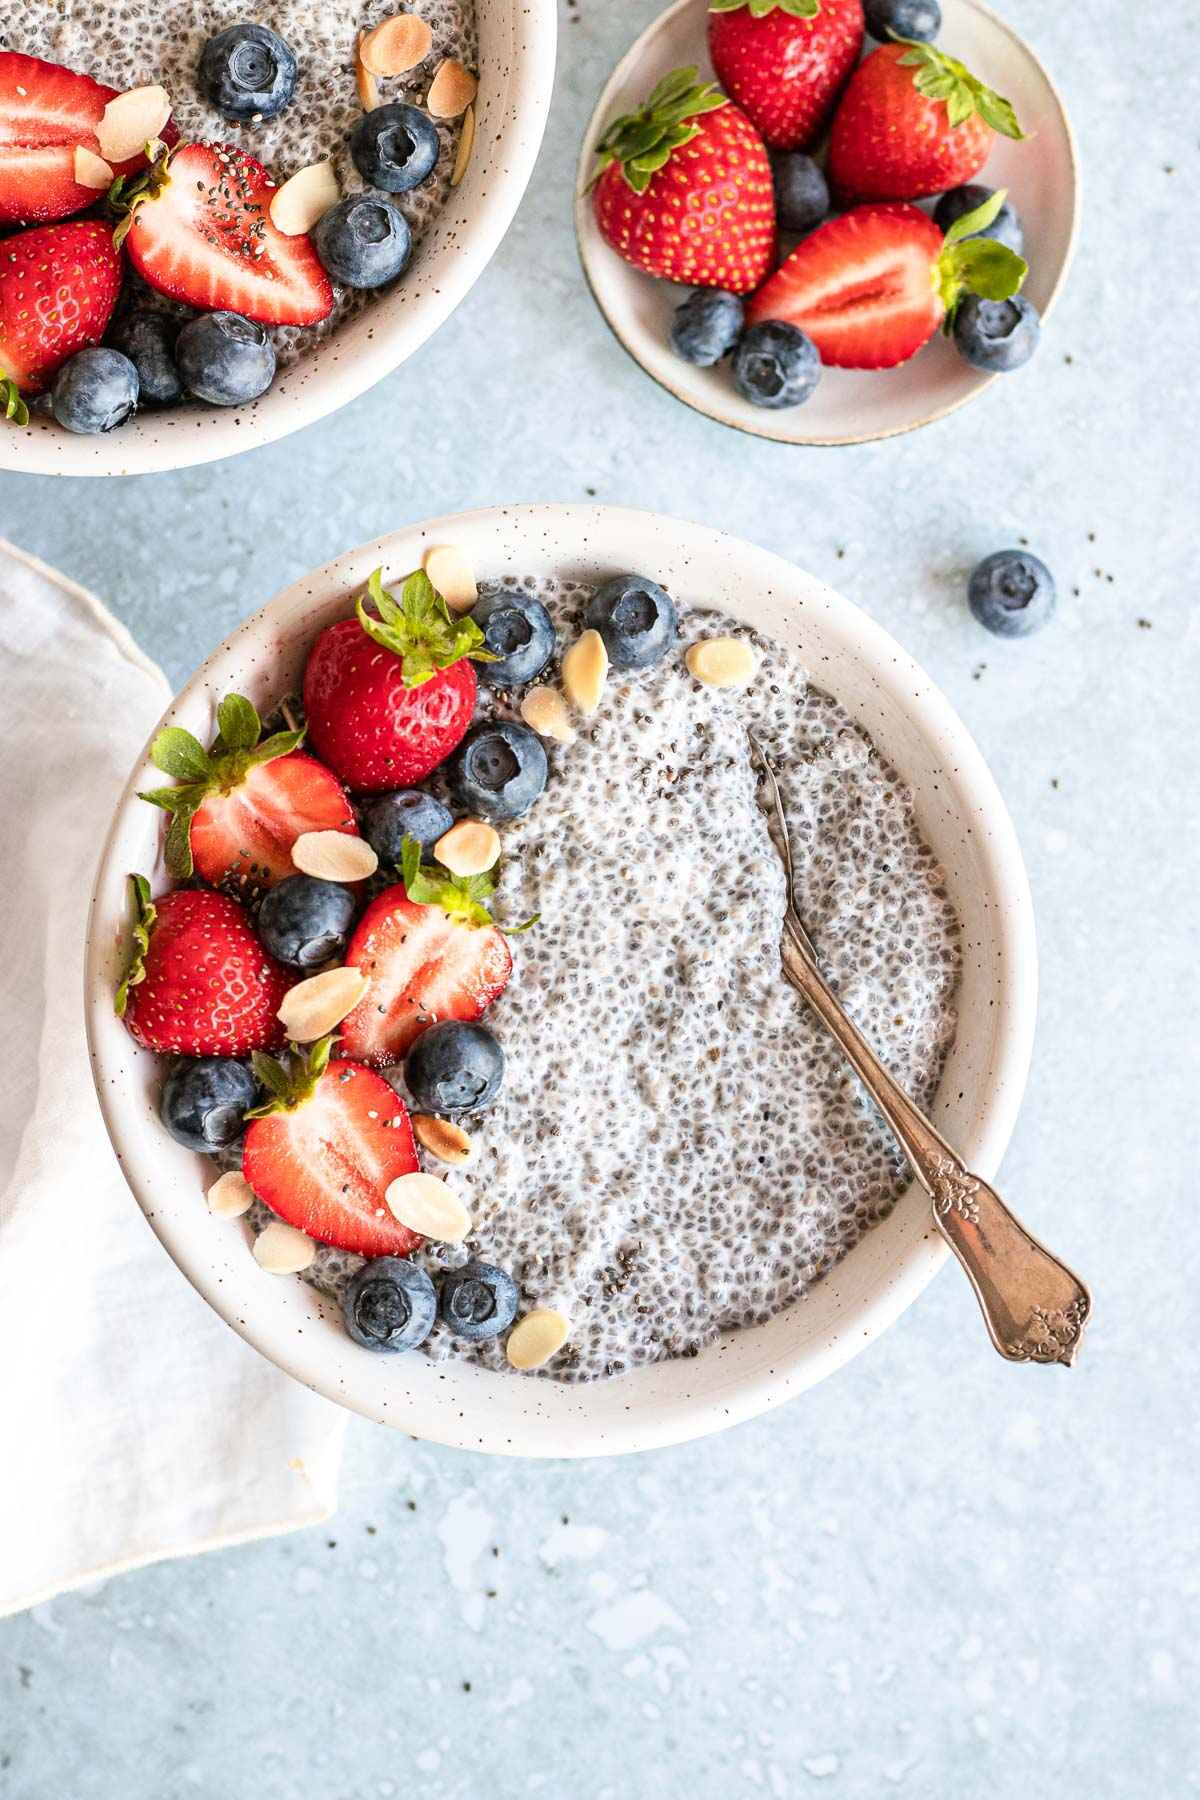 Vanilla Chai Pudding in bowl with berries on top and spoon in the bowl